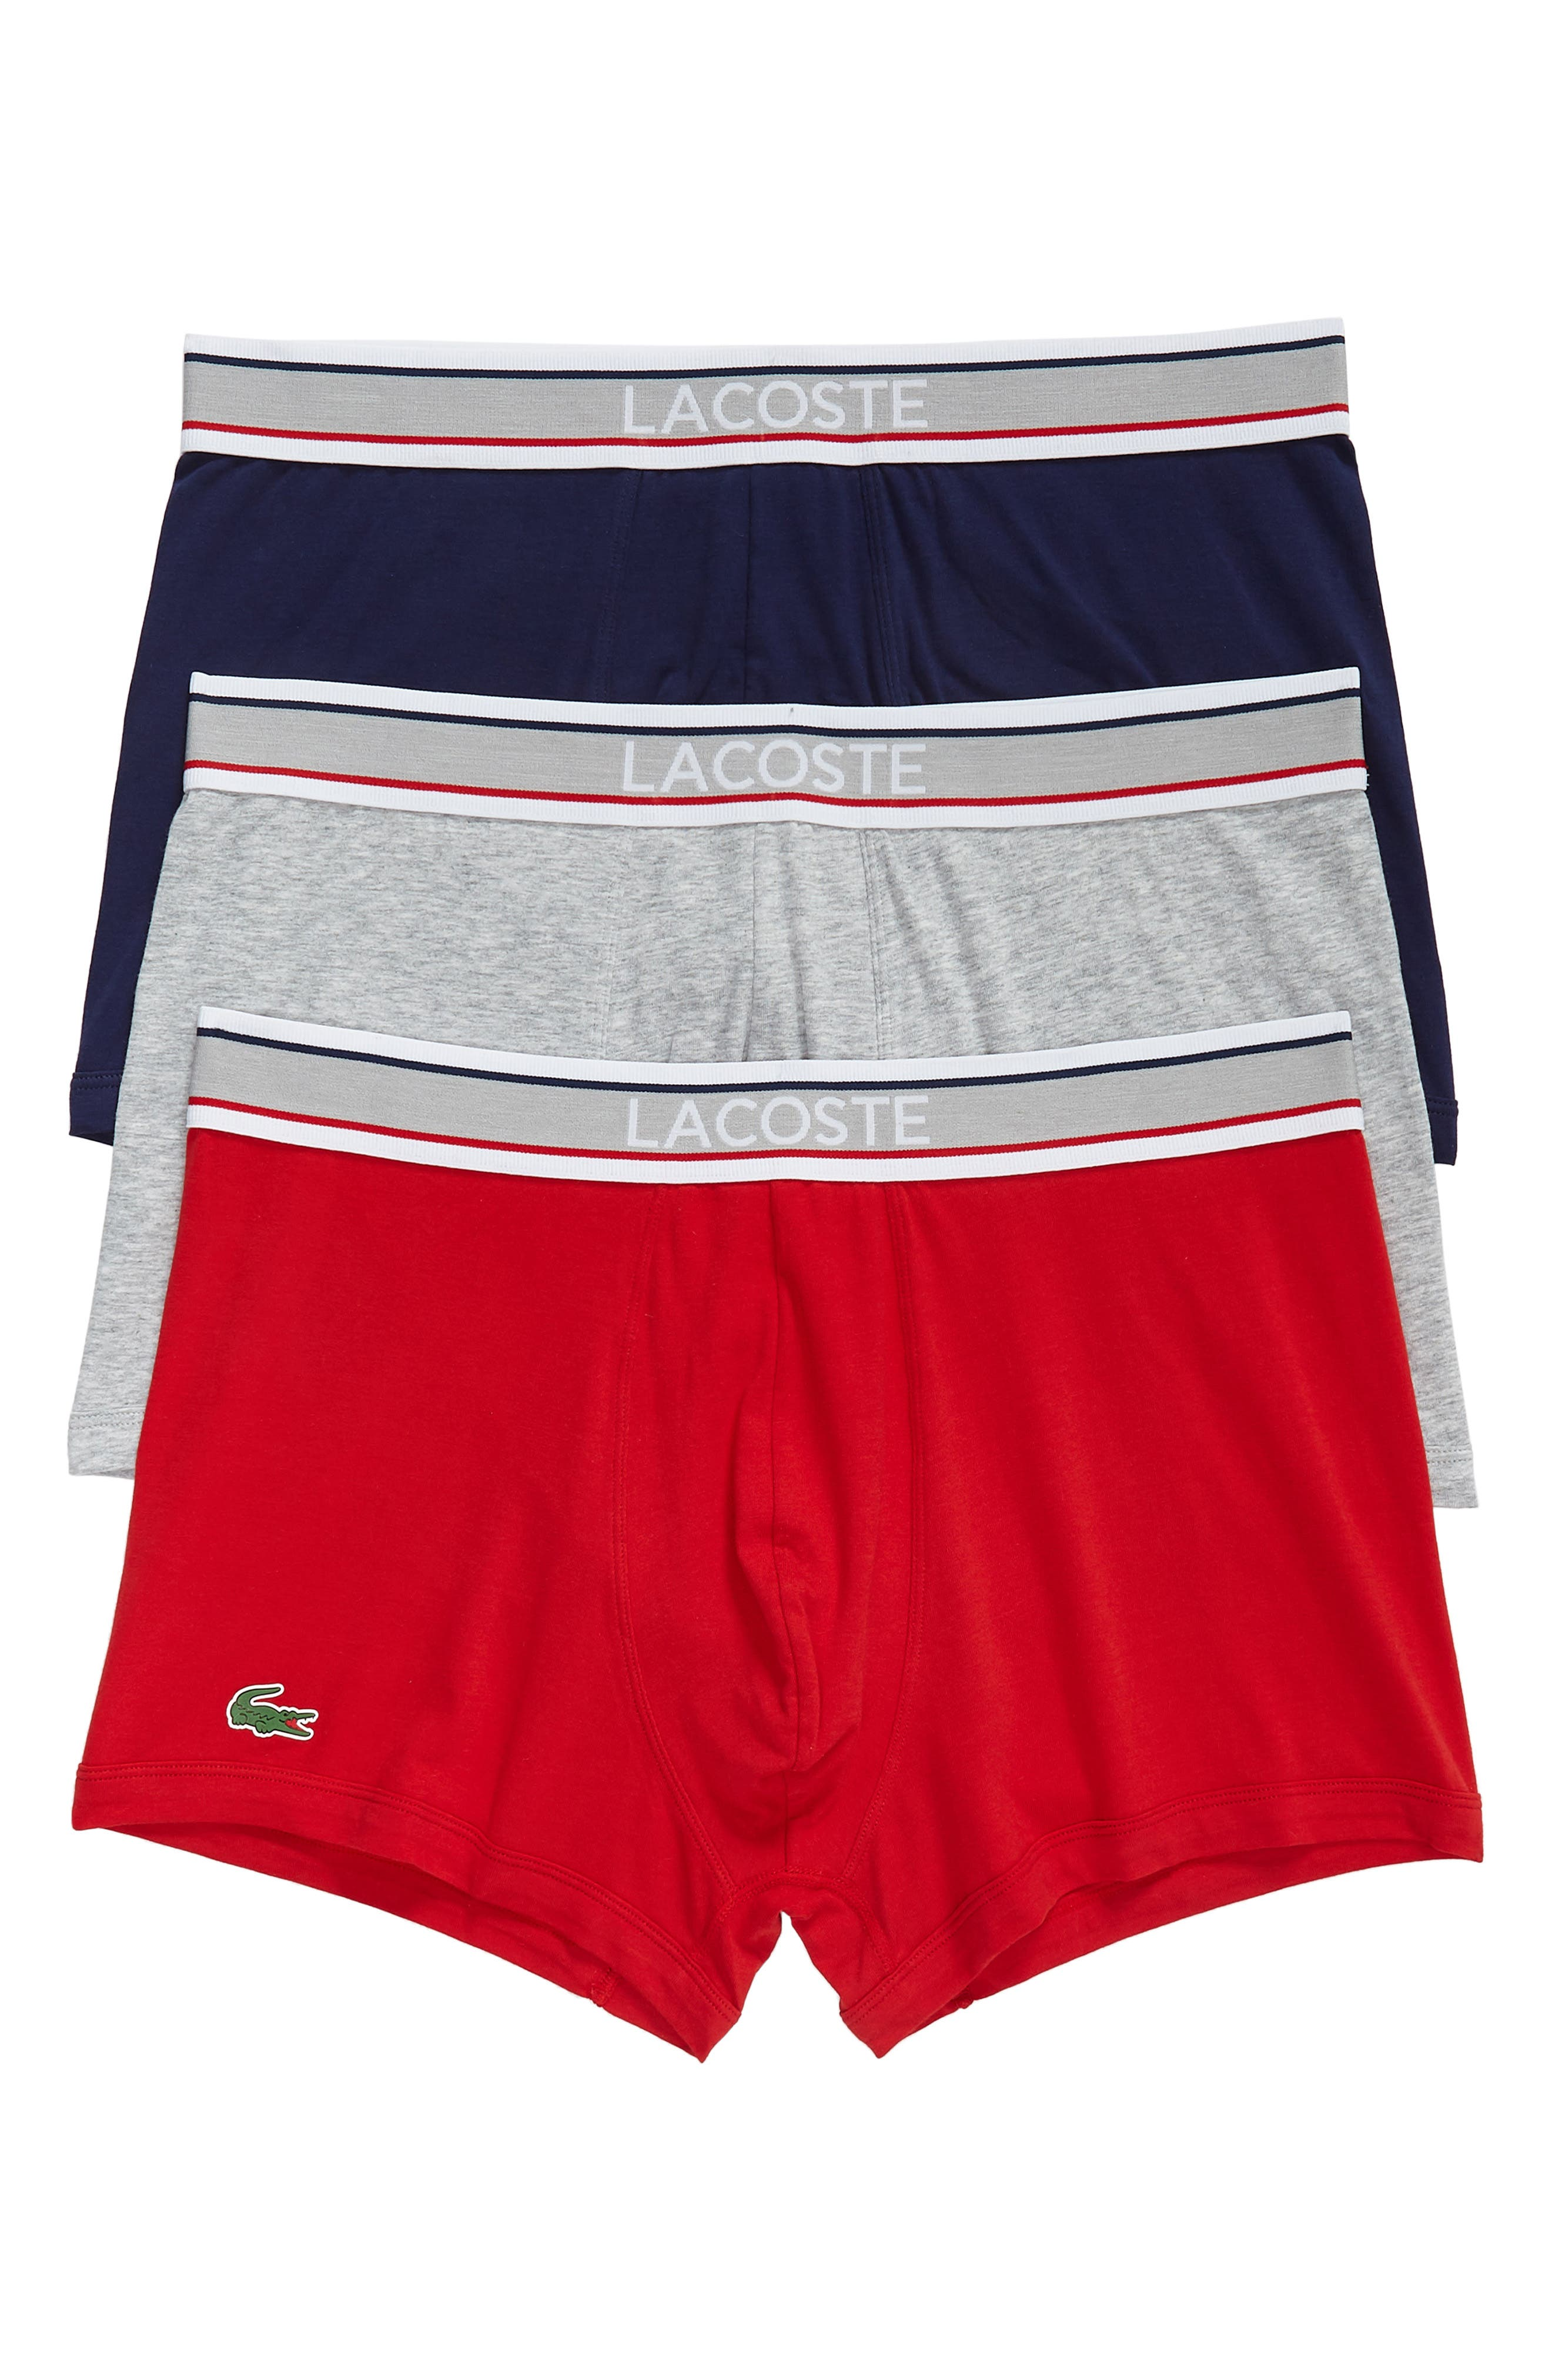 3-Pack Trunks,                             Main thumbnail 1, color,                             Blue/ Grey/ Cherry